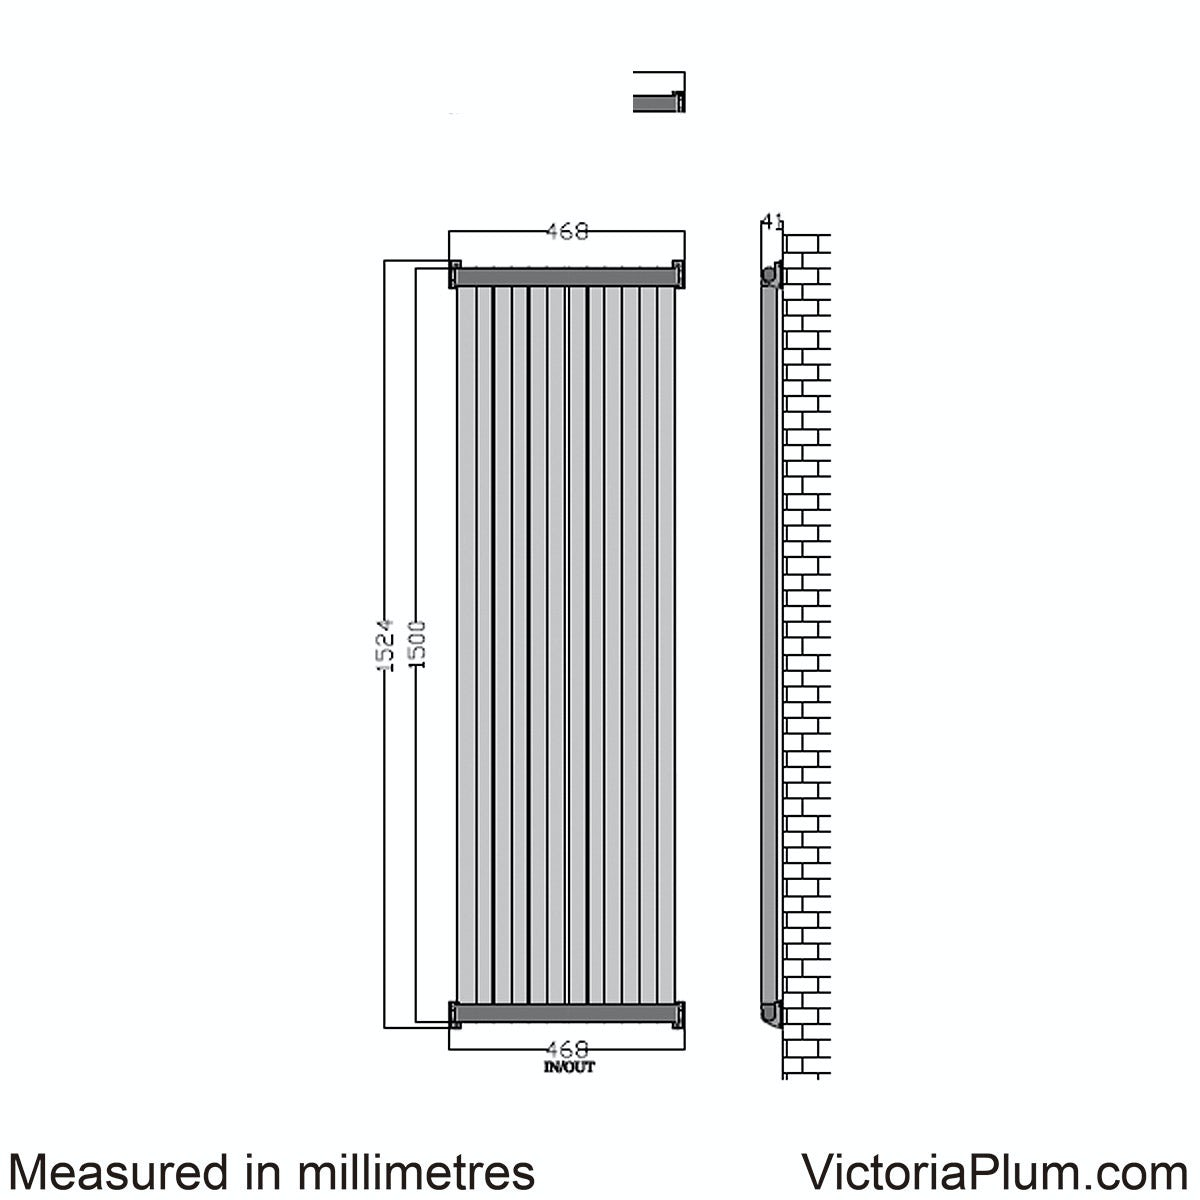 Dimensions for Mode Zephyra anthracite vertical radiator 1500 x 468